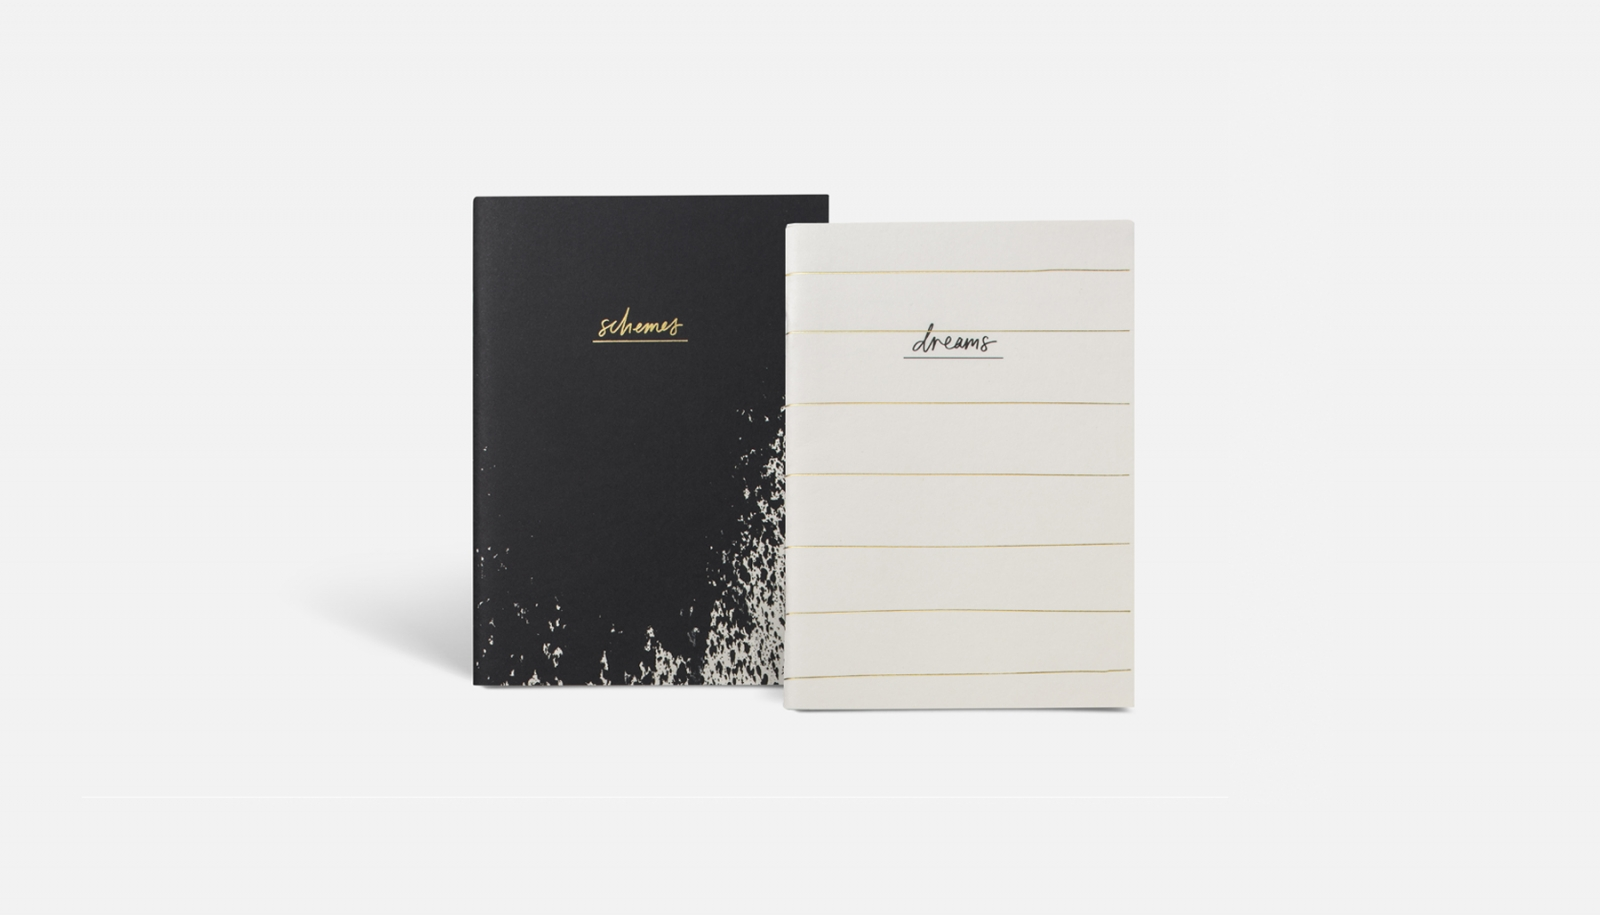 Dreams & Schemes A6 Notebook £12.95